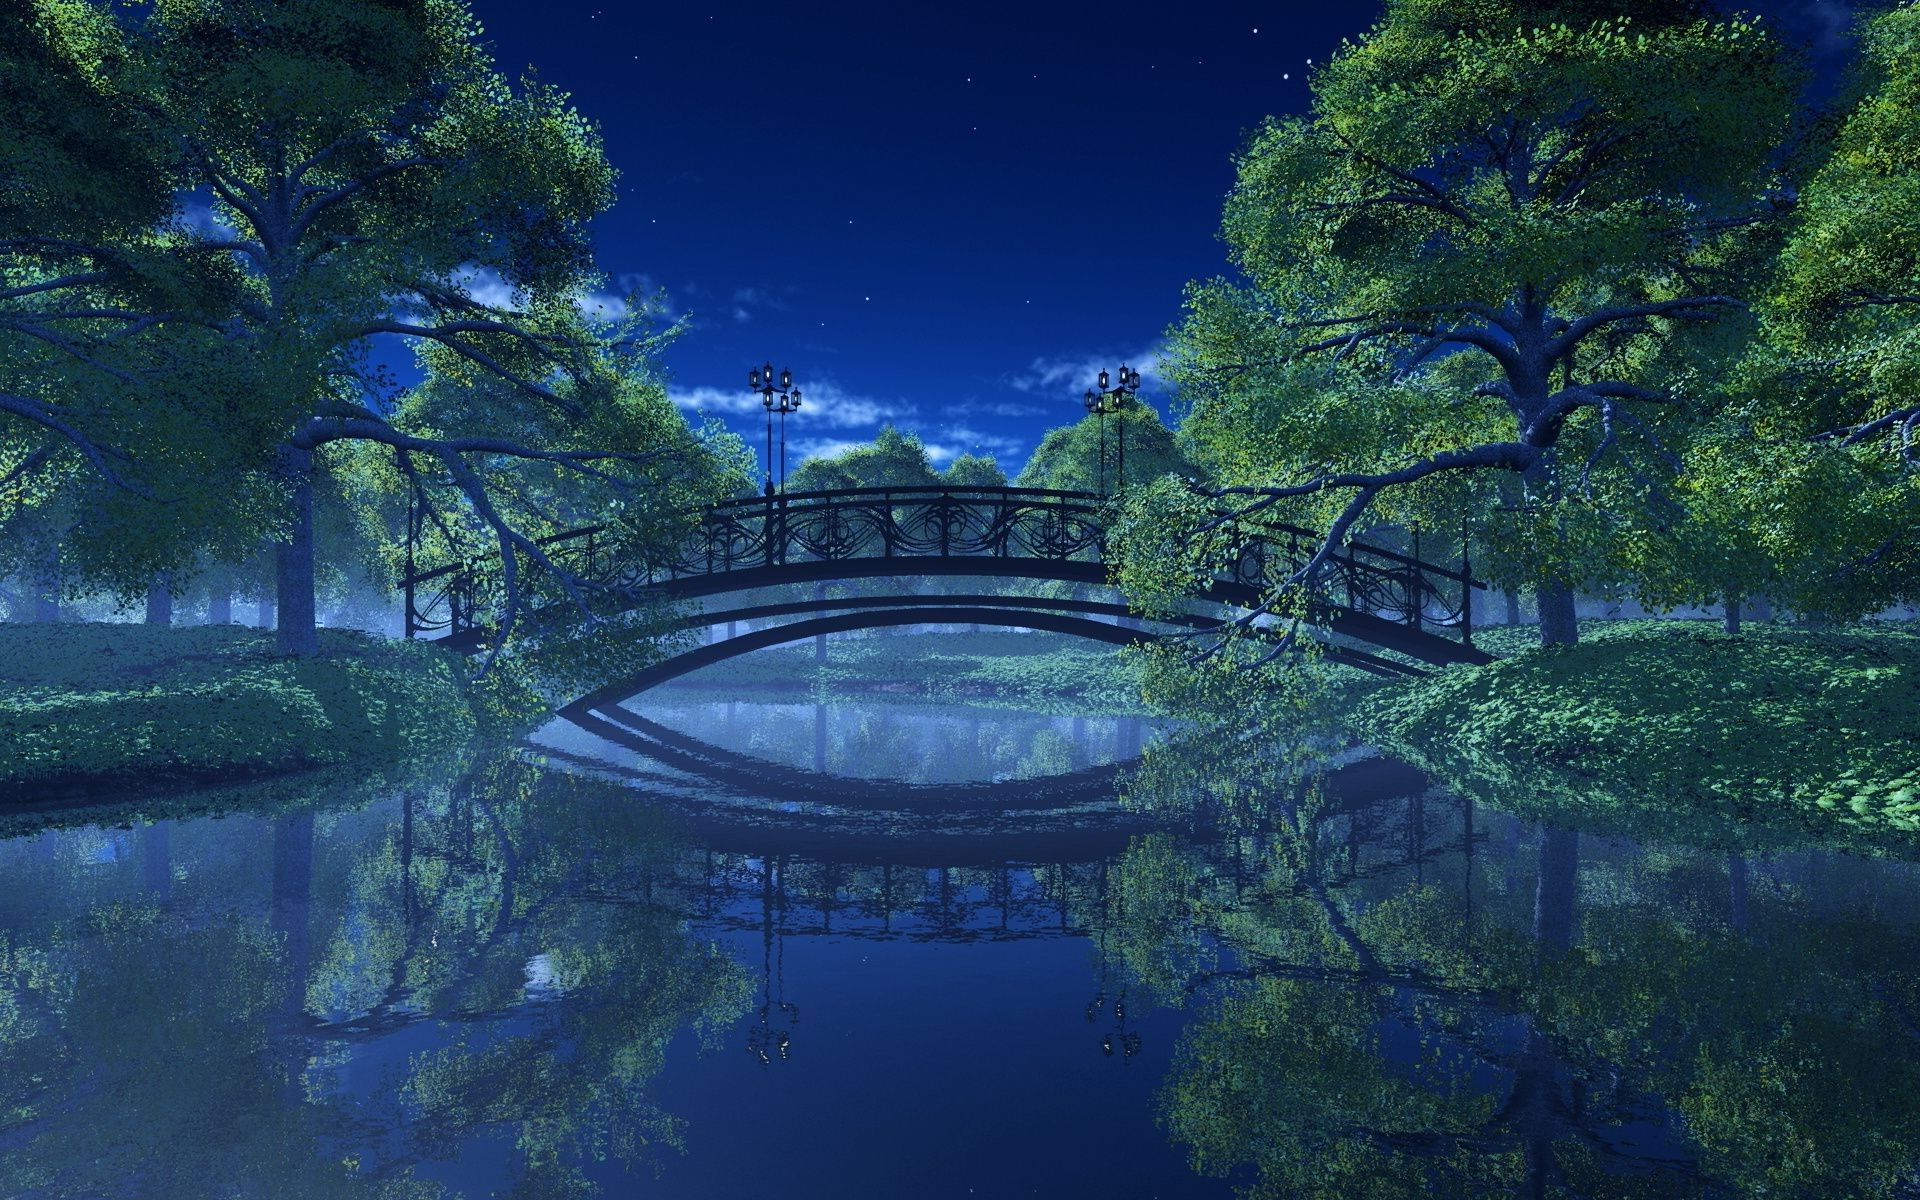 Park river trees Landscape night bridge lights